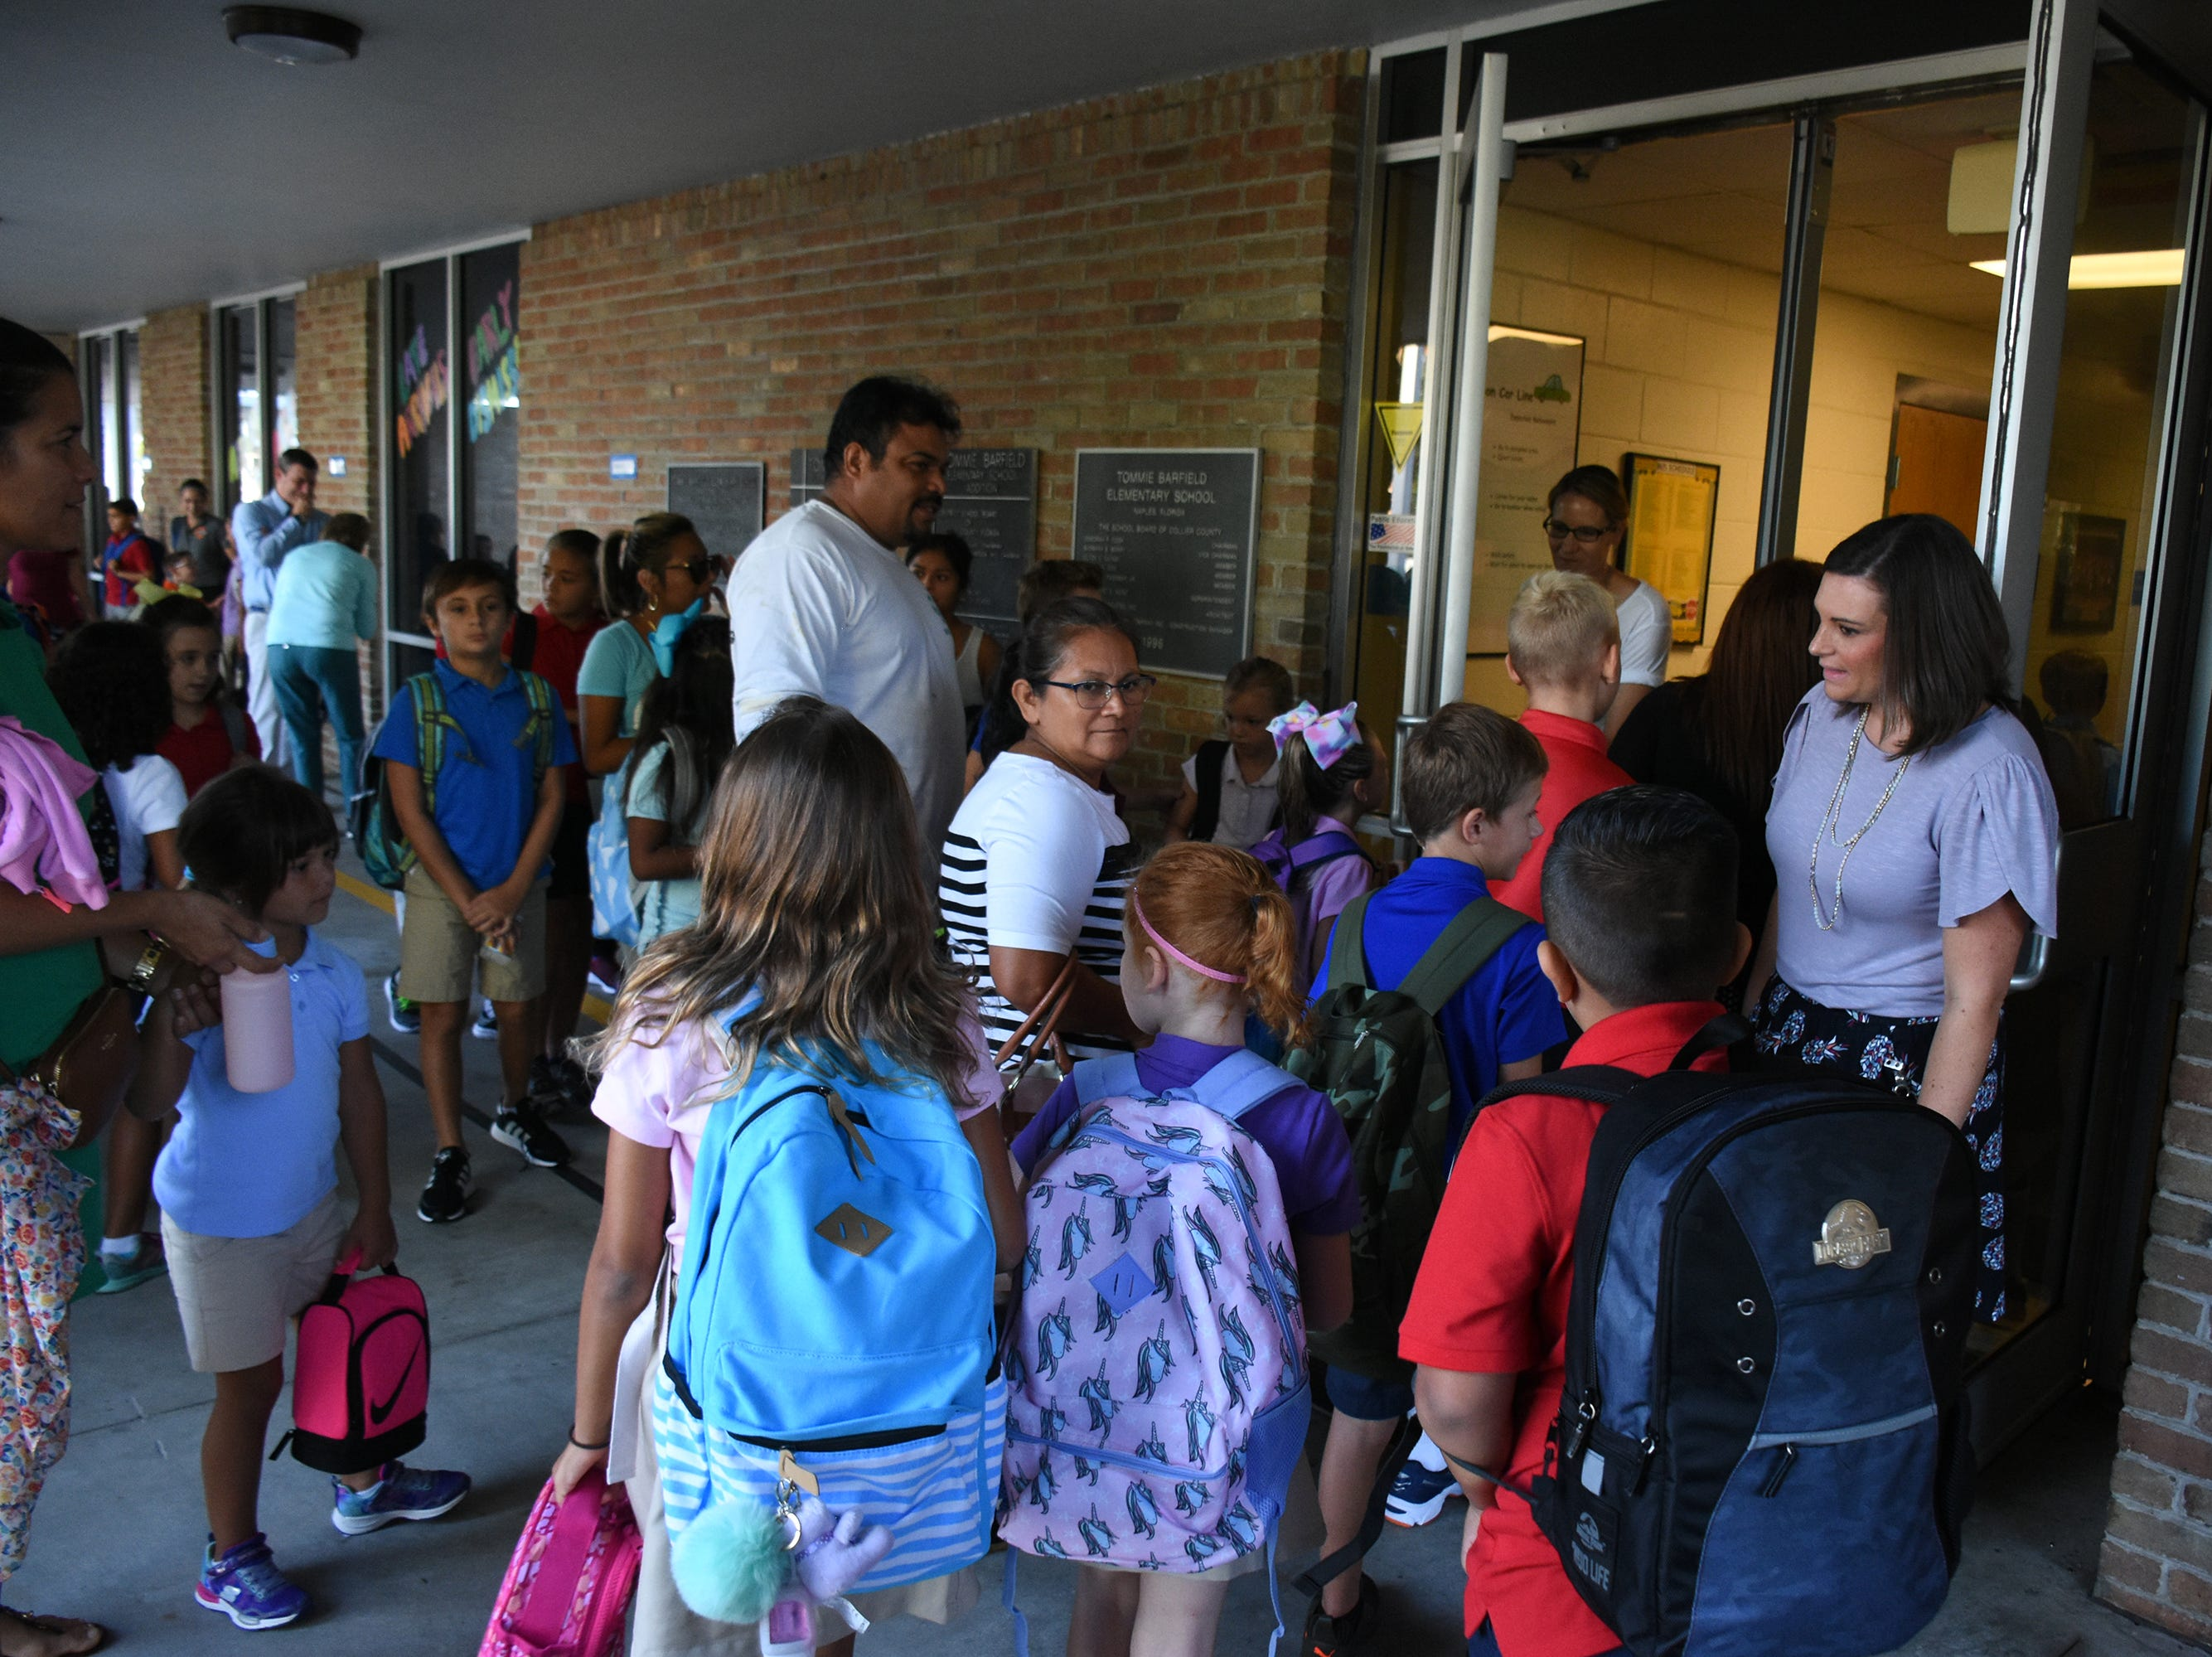 Marco Island students, along with all of Collier County, returned to school for the first day of classes in the new school year on Wednesday.